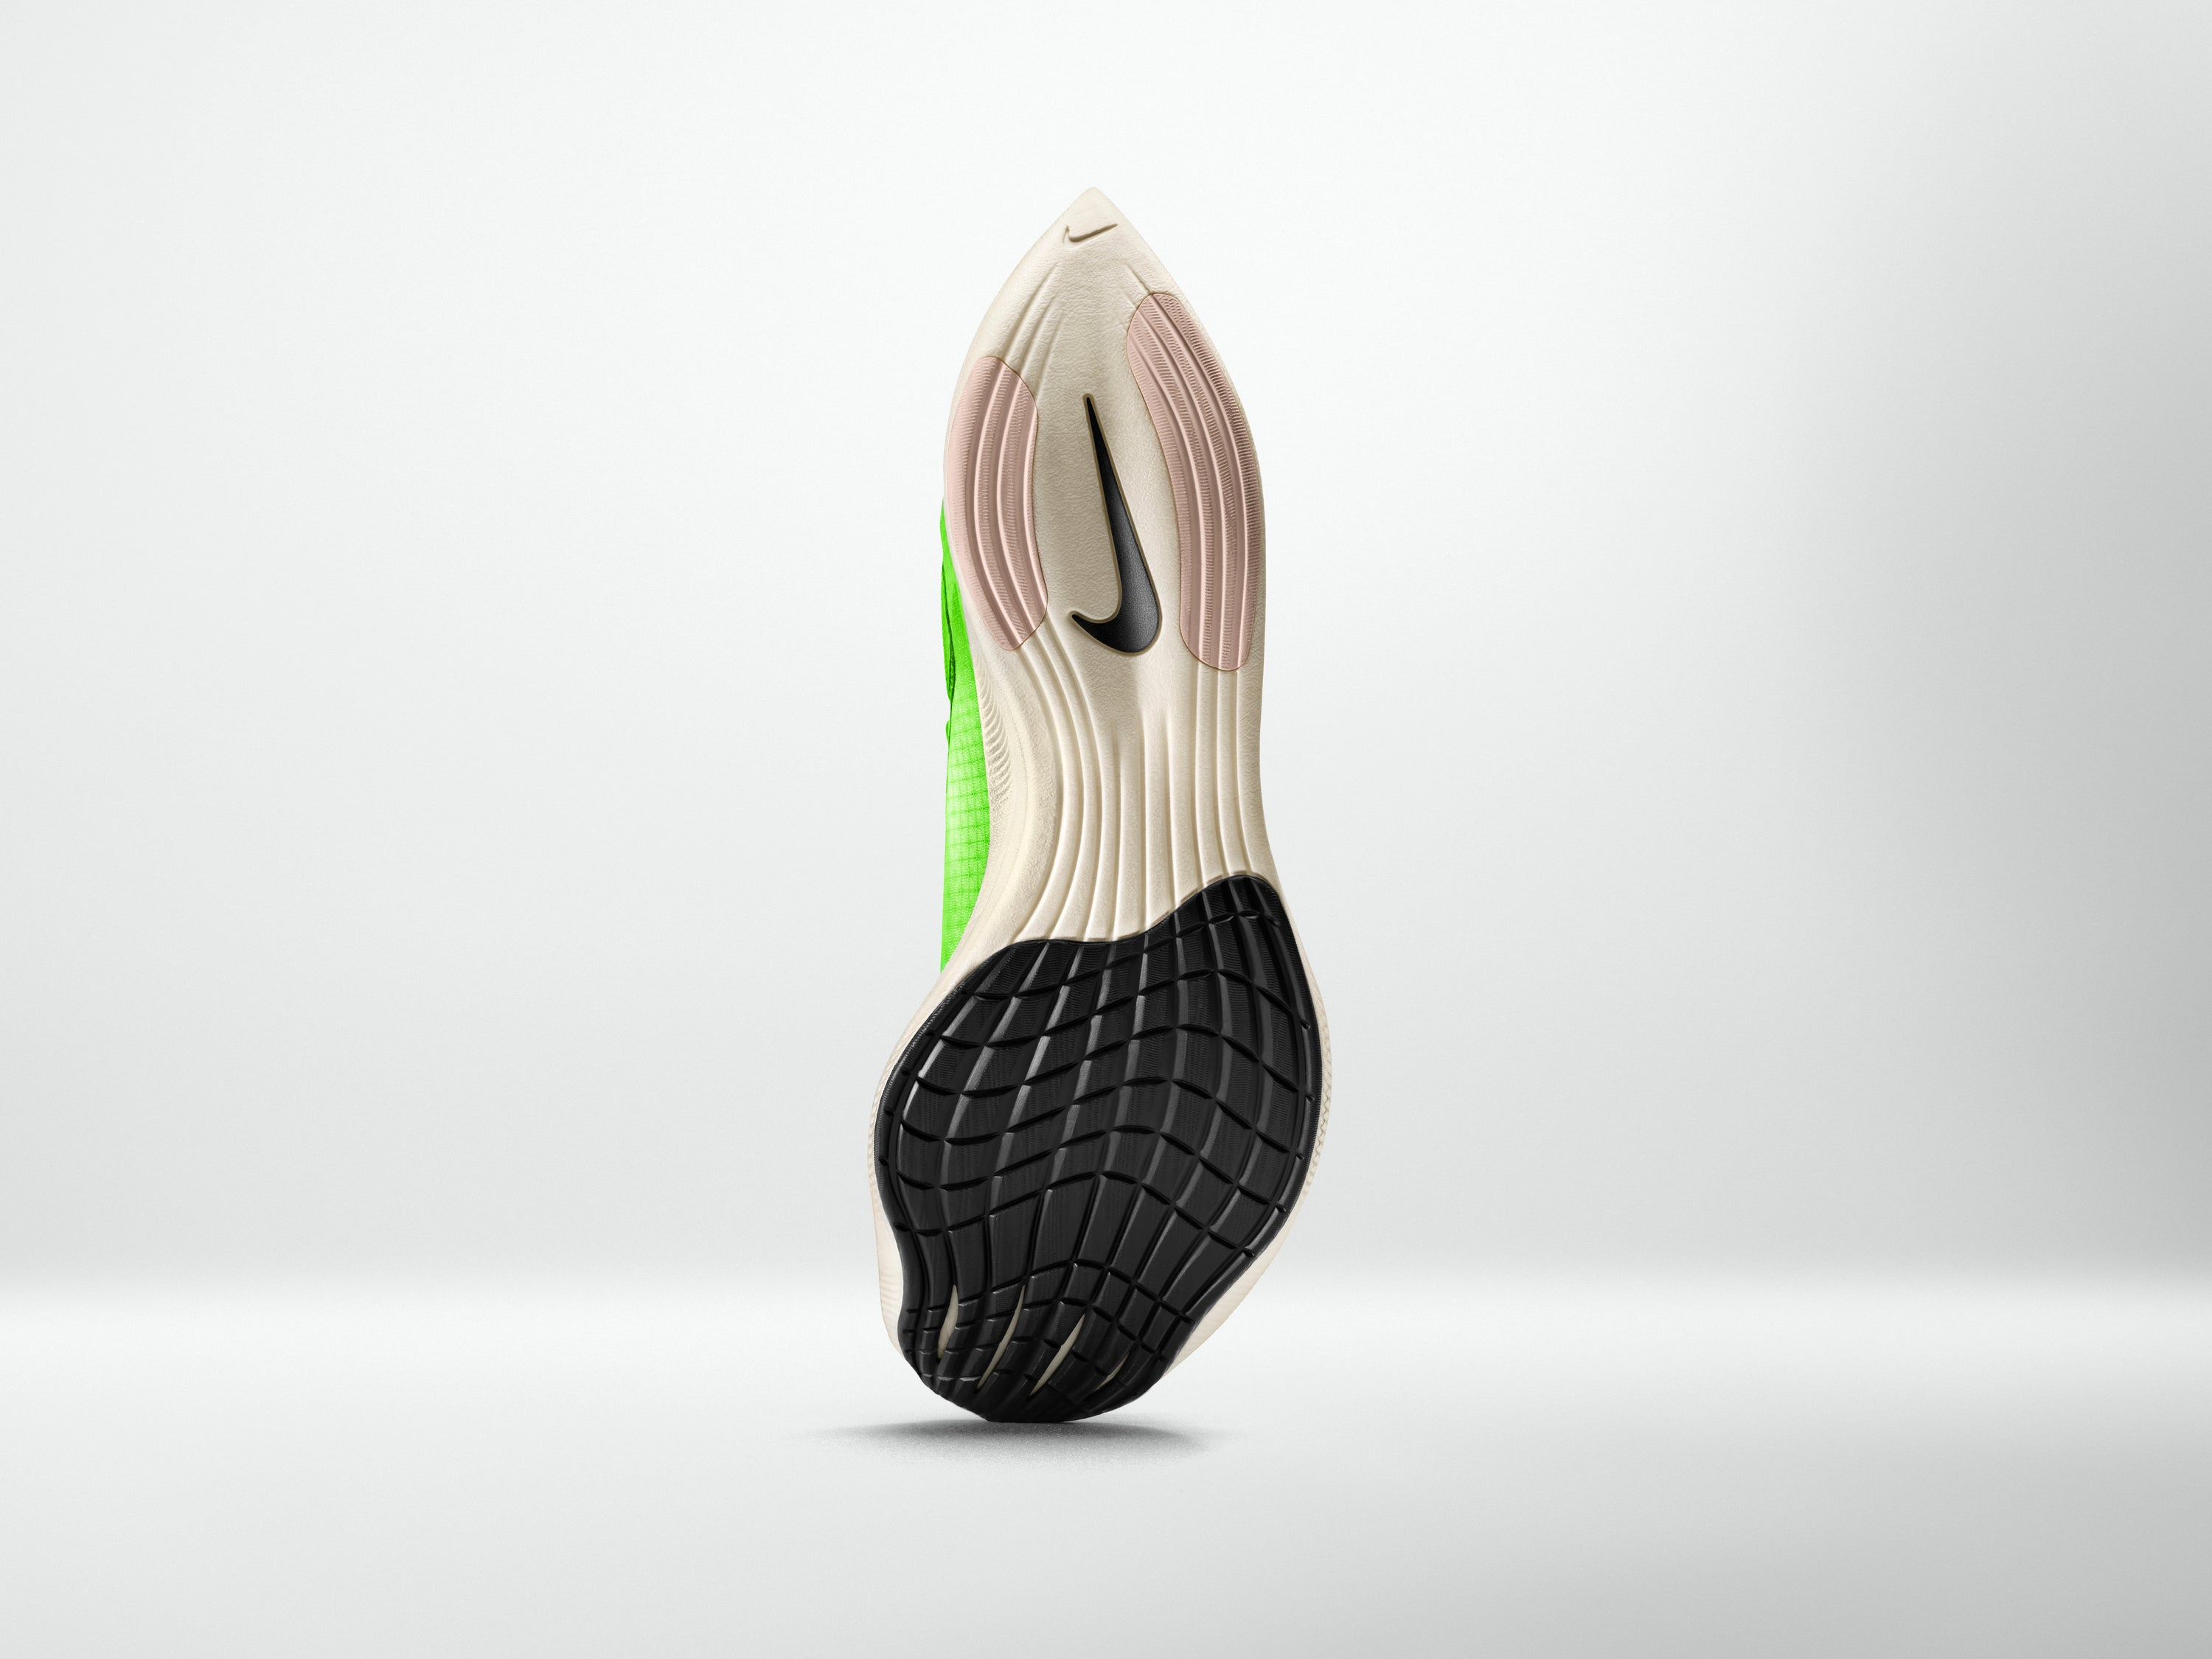 Nike ZoomX Vaporfly NEXT% sole